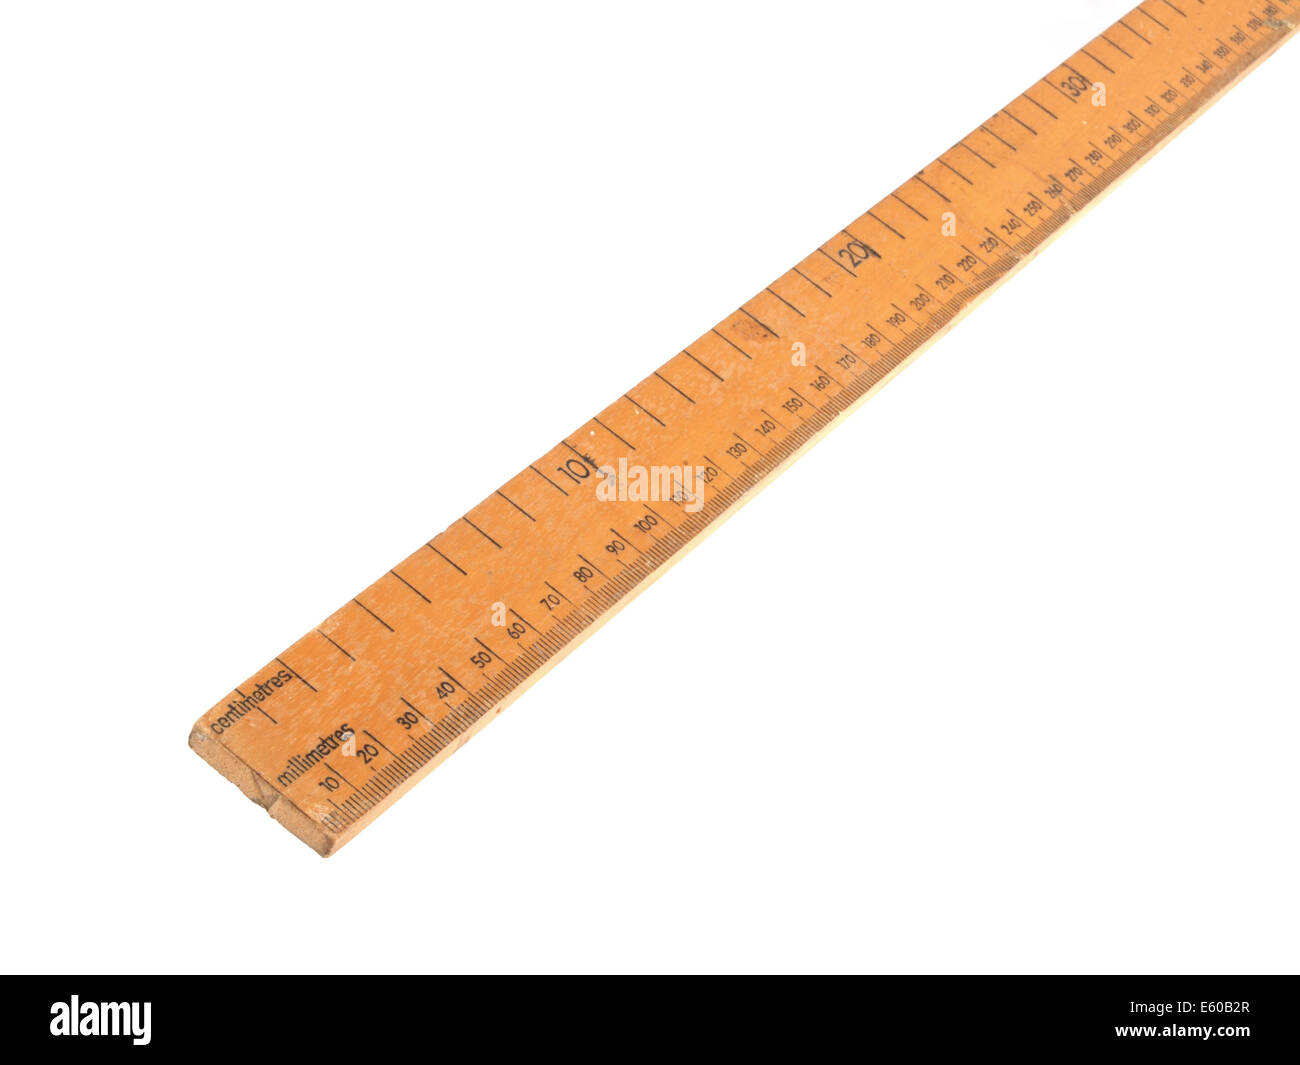 Close up photo of a wooden metric ruler on a white background. - Stock Image